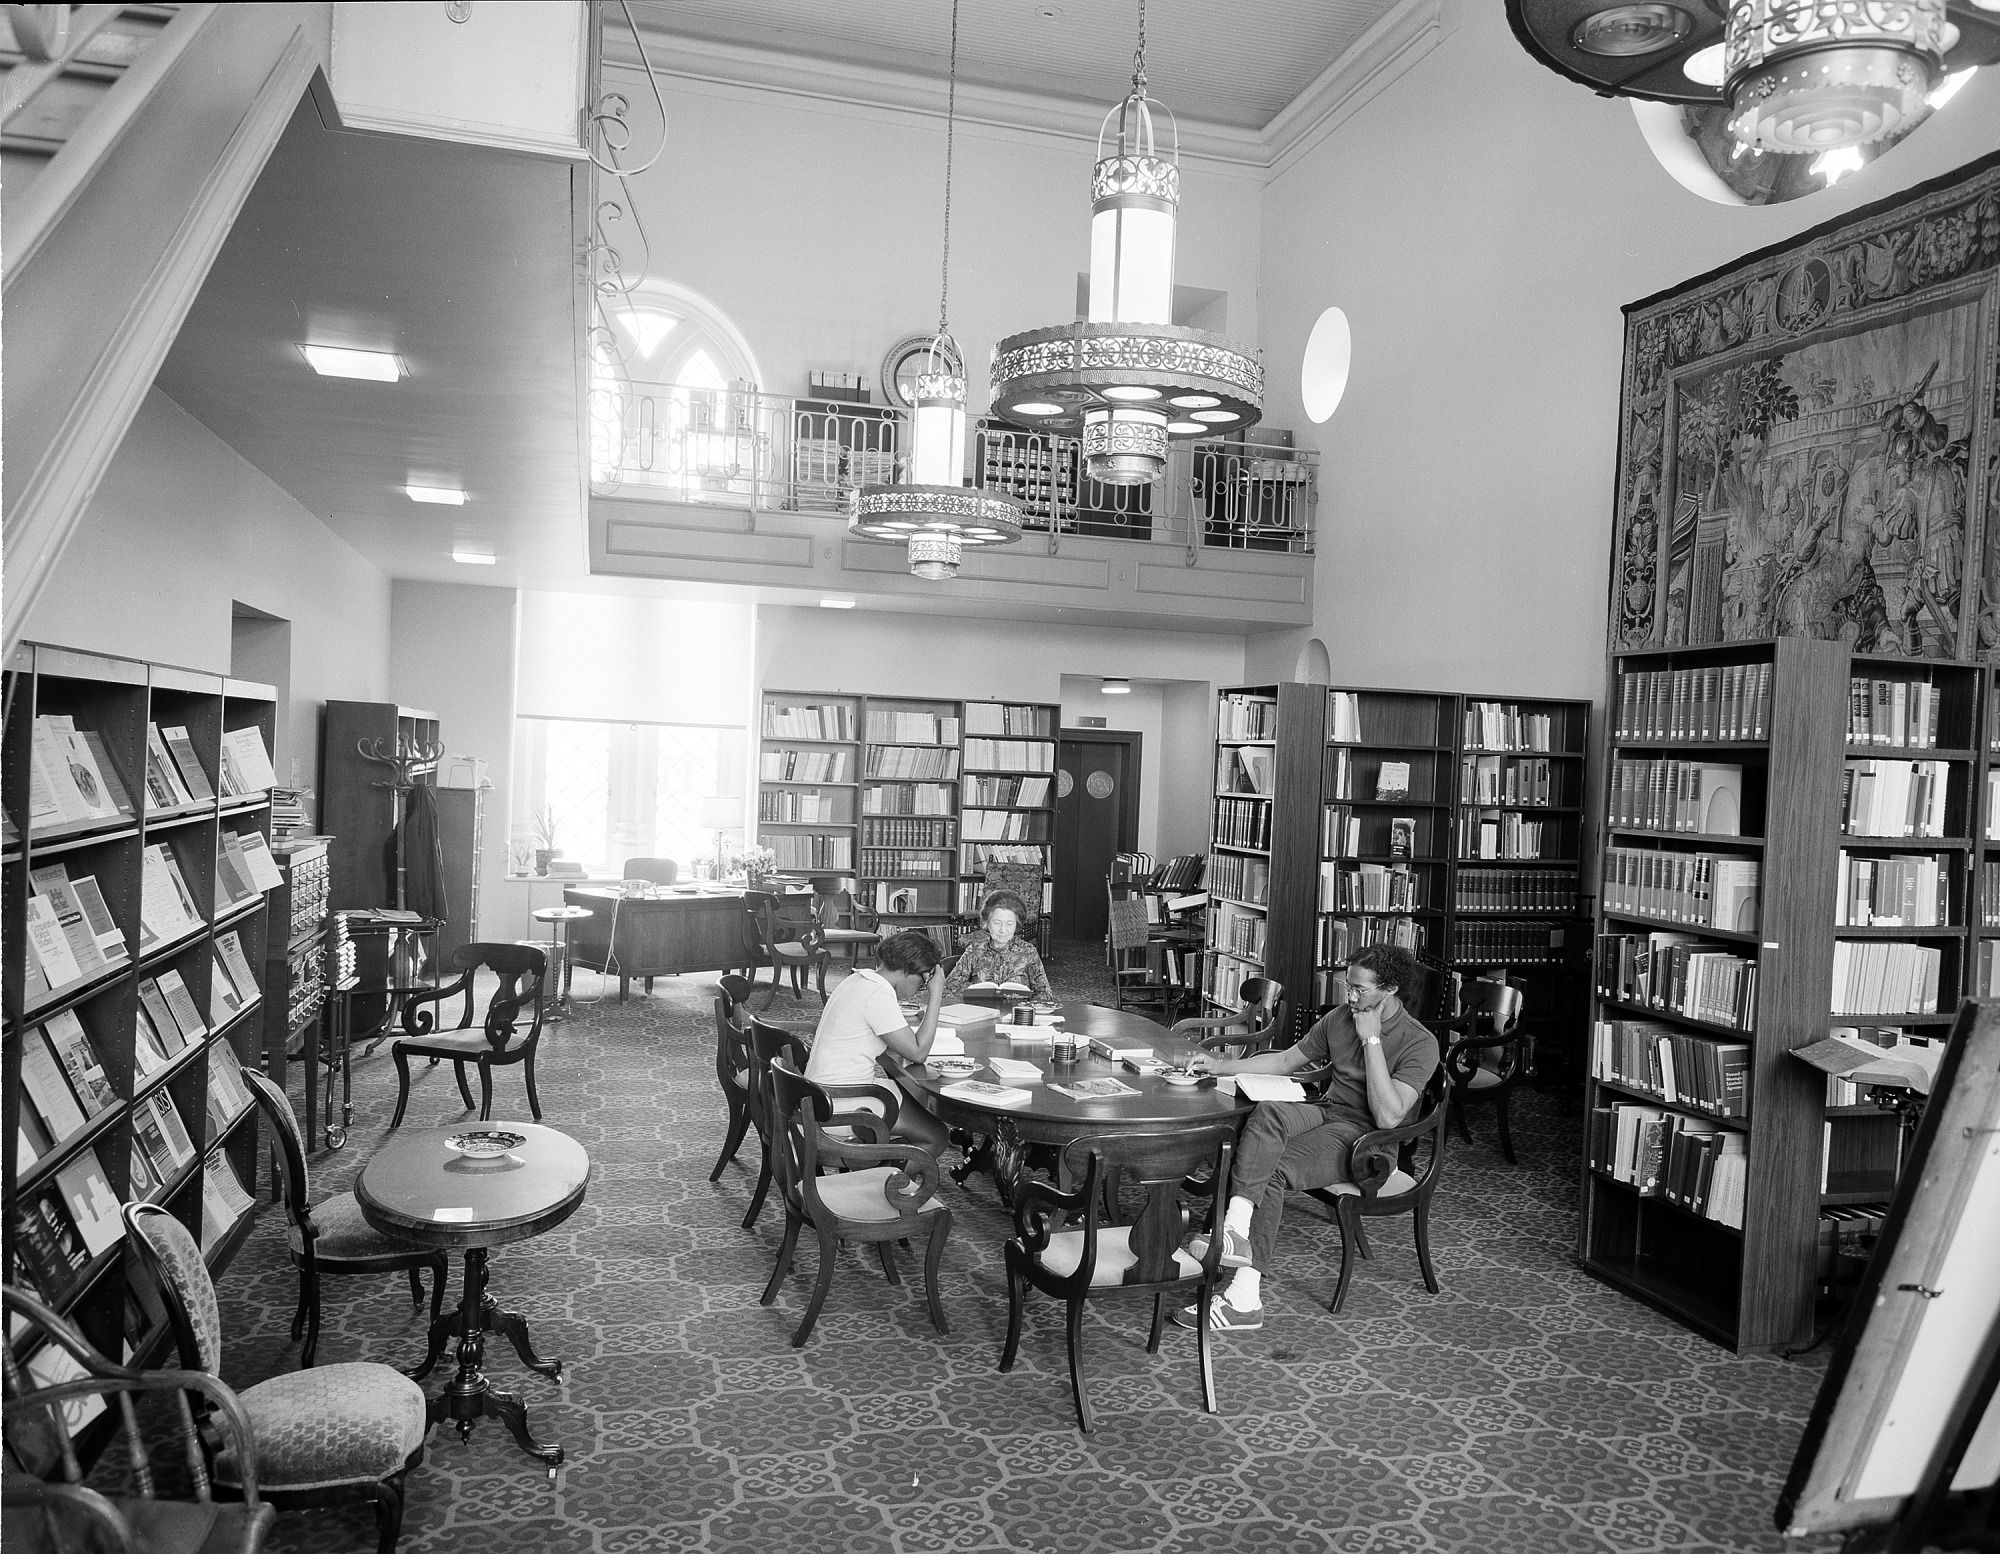 Woodrow Wilson Library, SIB, by Unknown, 1972, Smithsonian Archives - History Div, 72-4900.